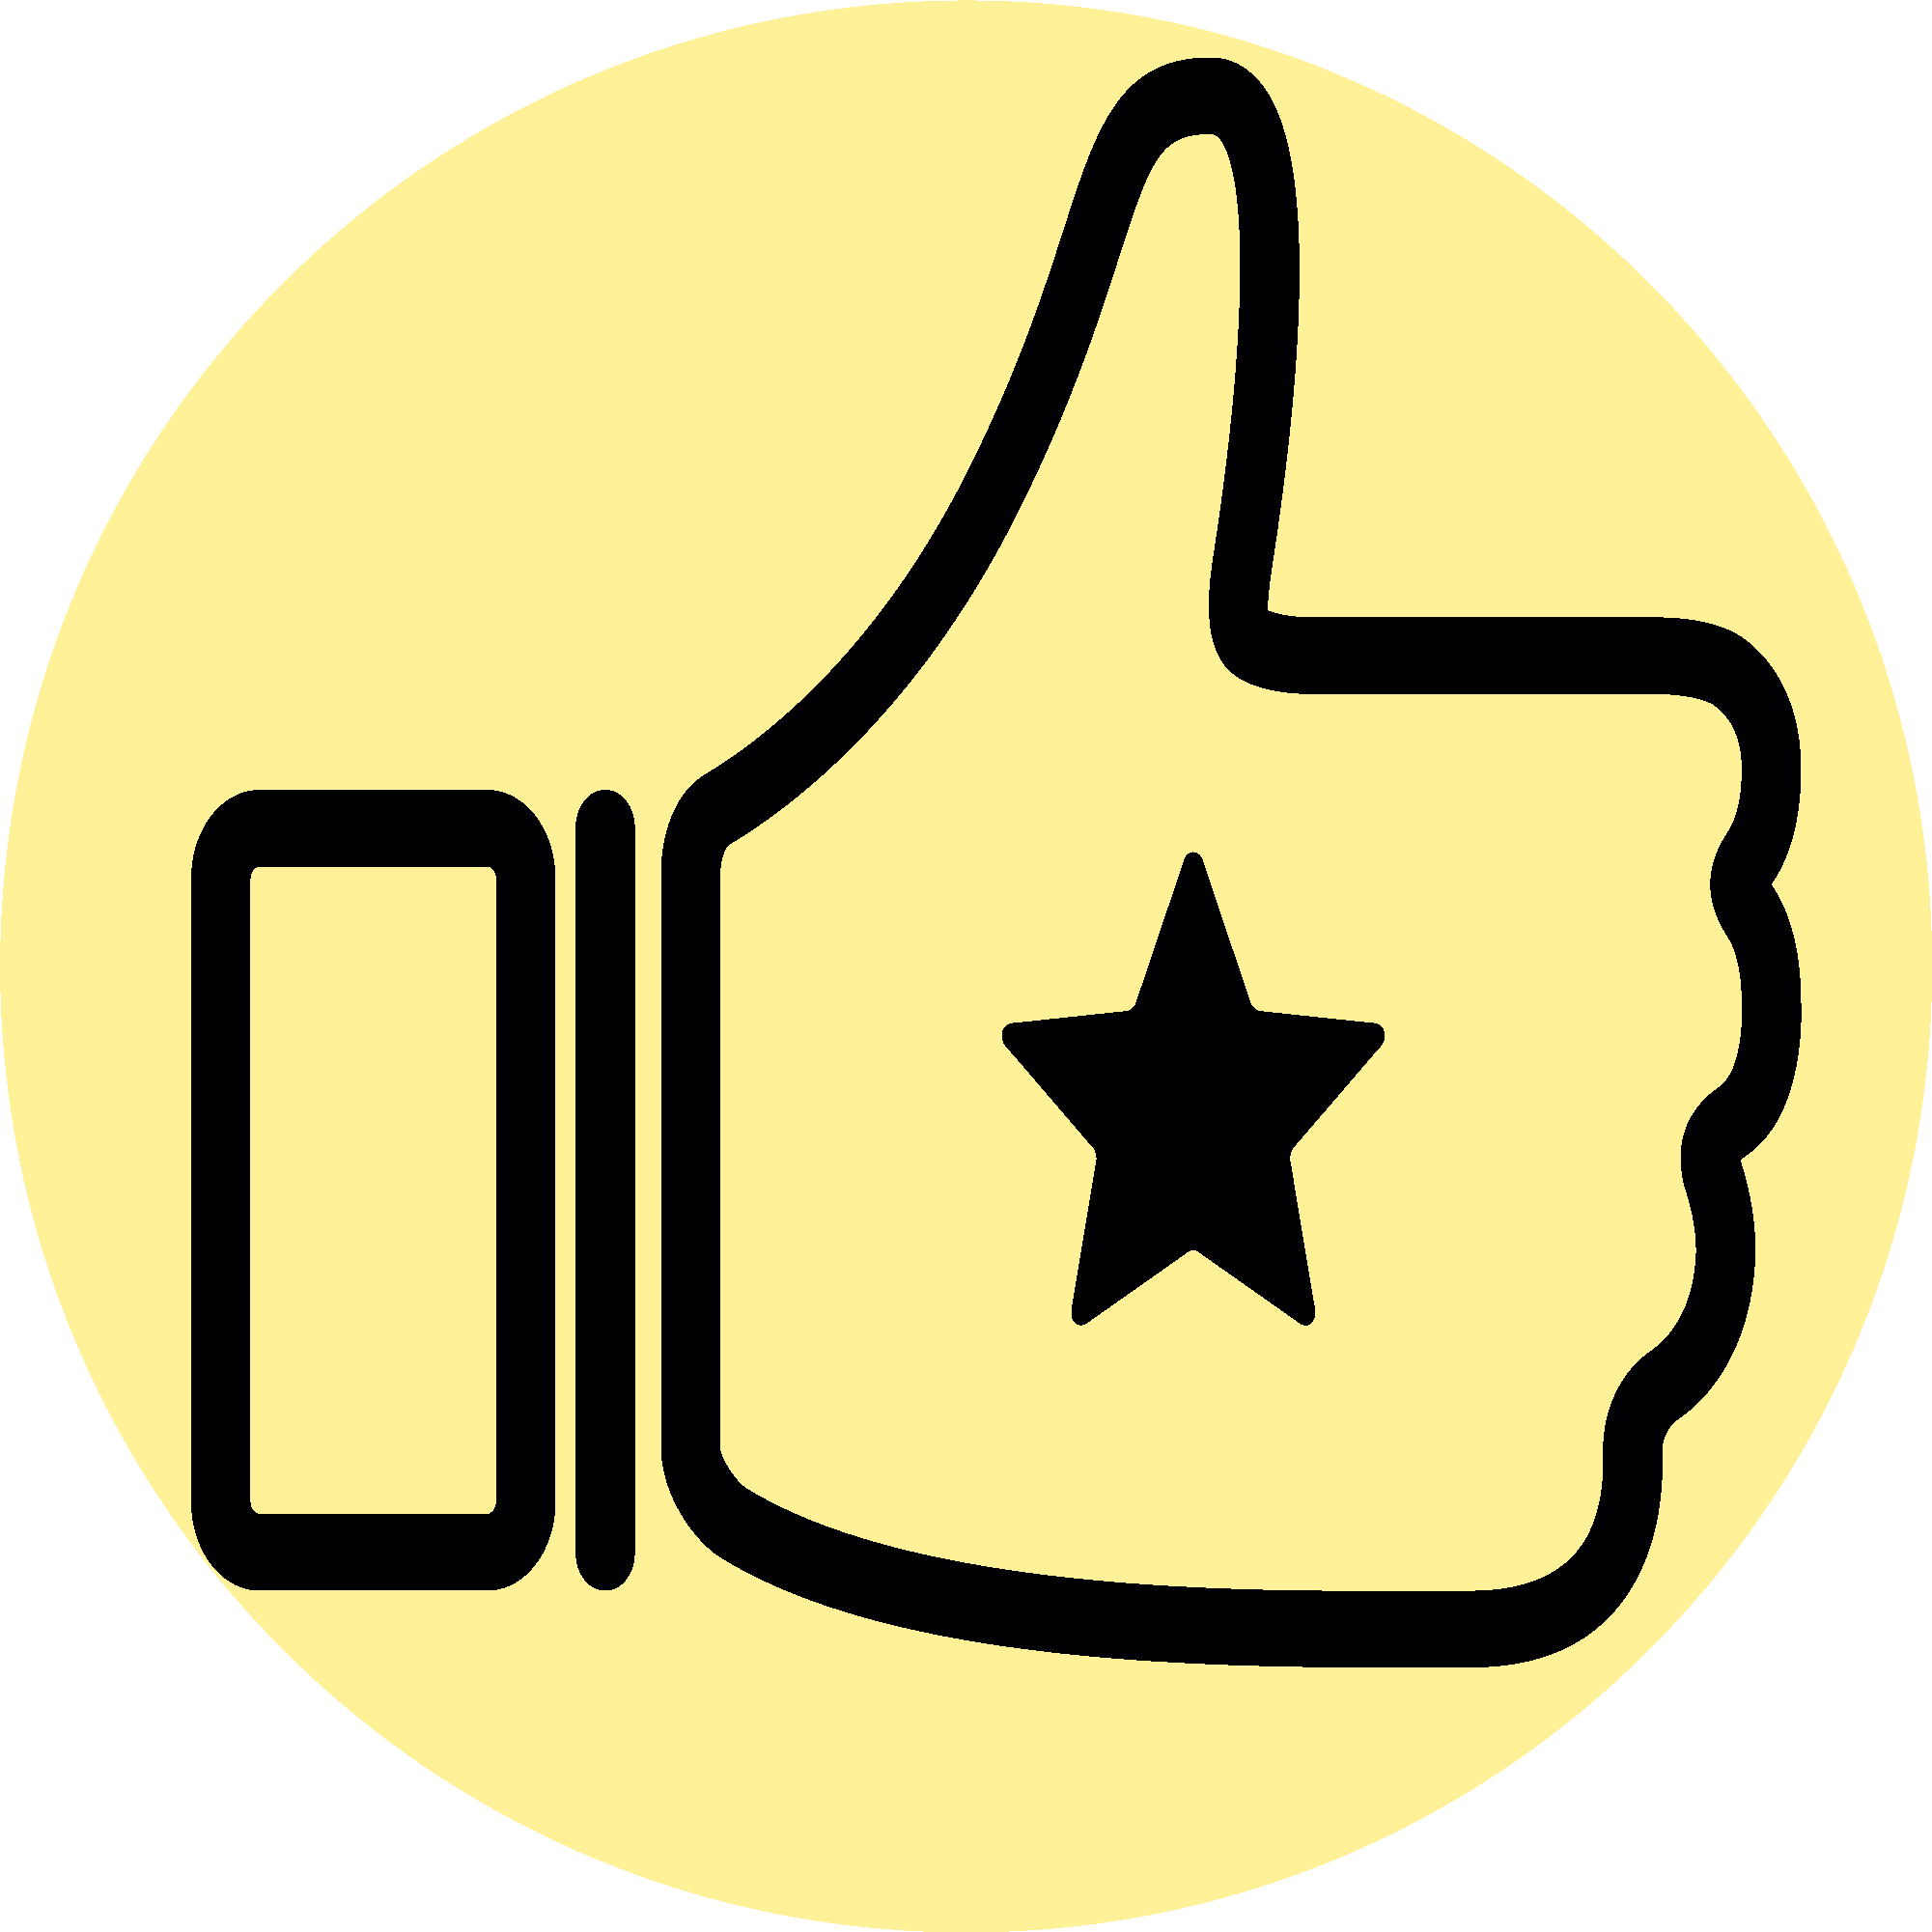 thumb up with star